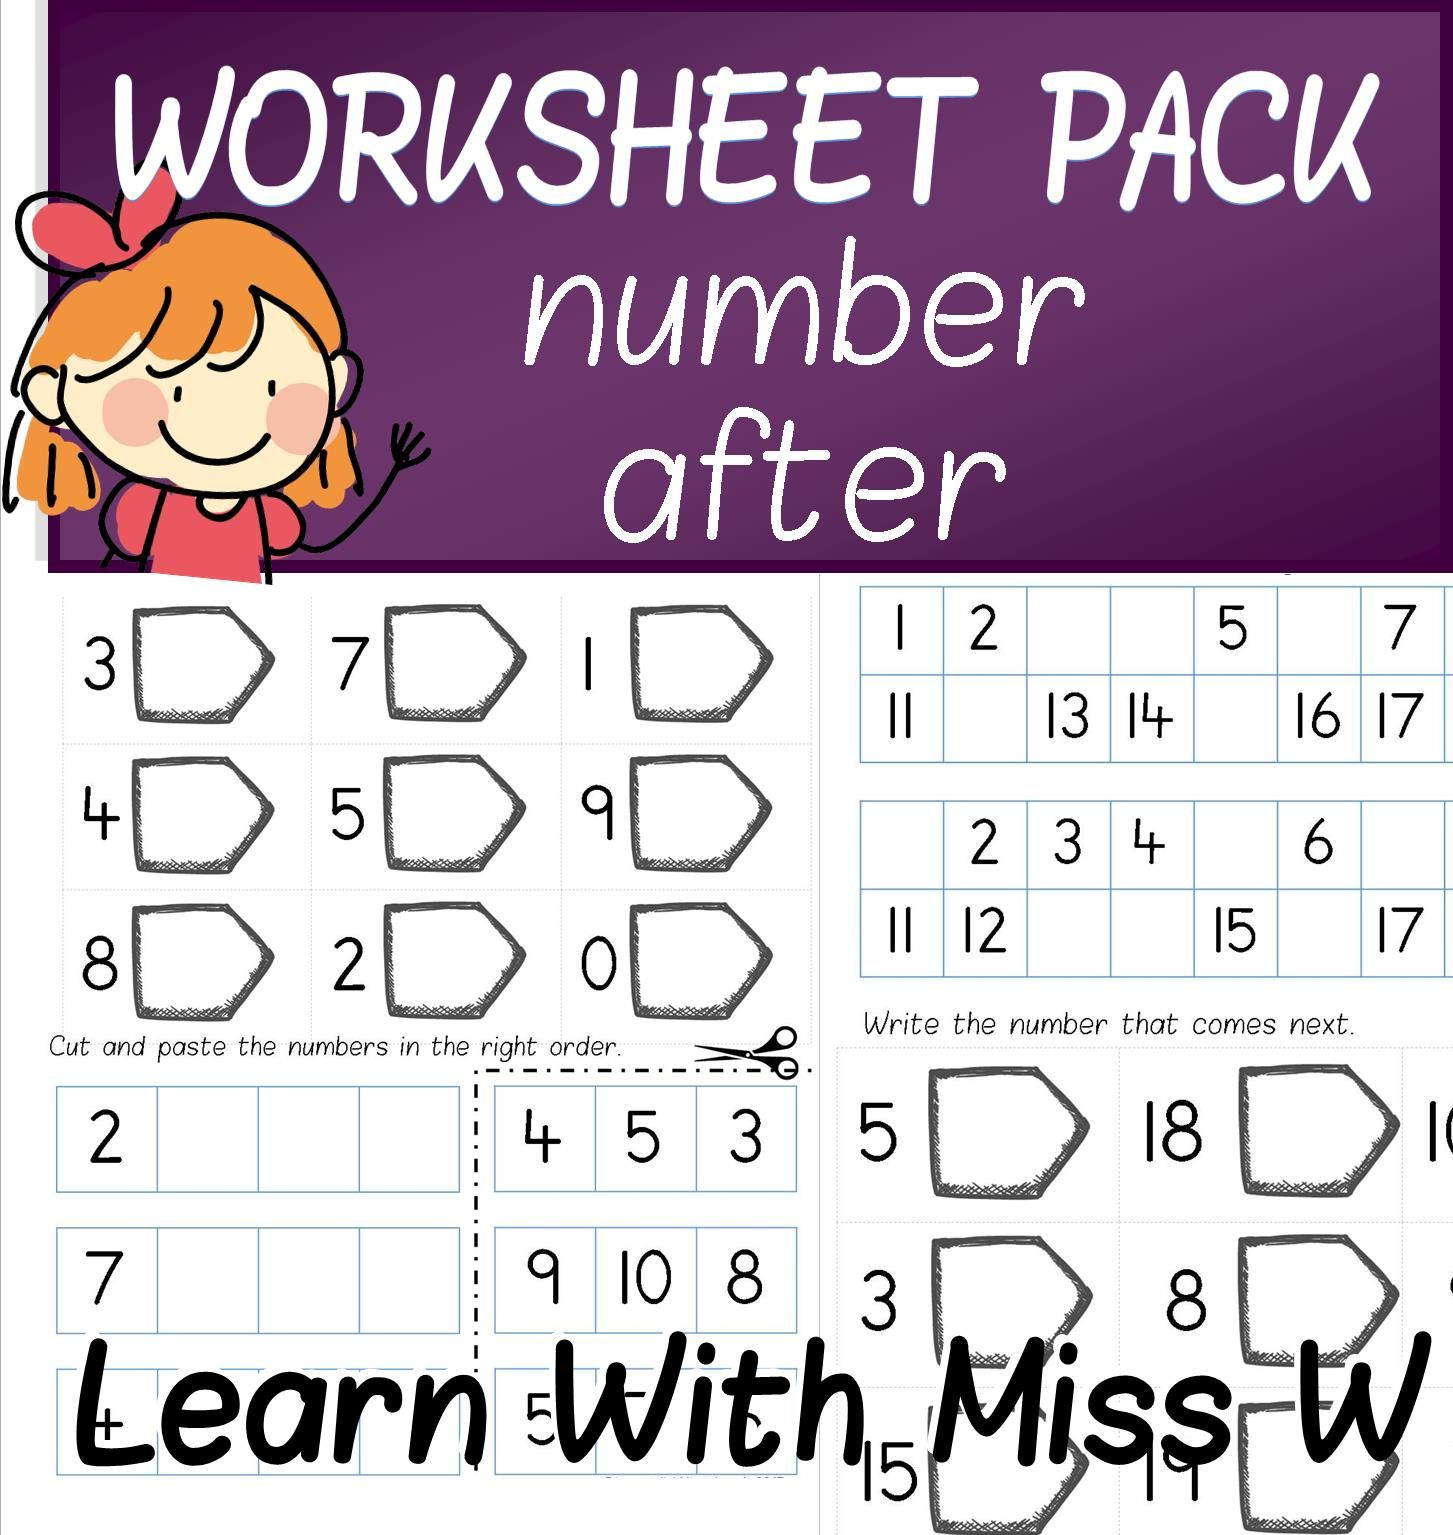 6 Worksheets To Explore The Concept Of The Number After Activities Include Fill In The Missing Numb Literacy And Numeracy Teaching Numbers Kindergarten Math [ 1535 x 1453 Pixel ]